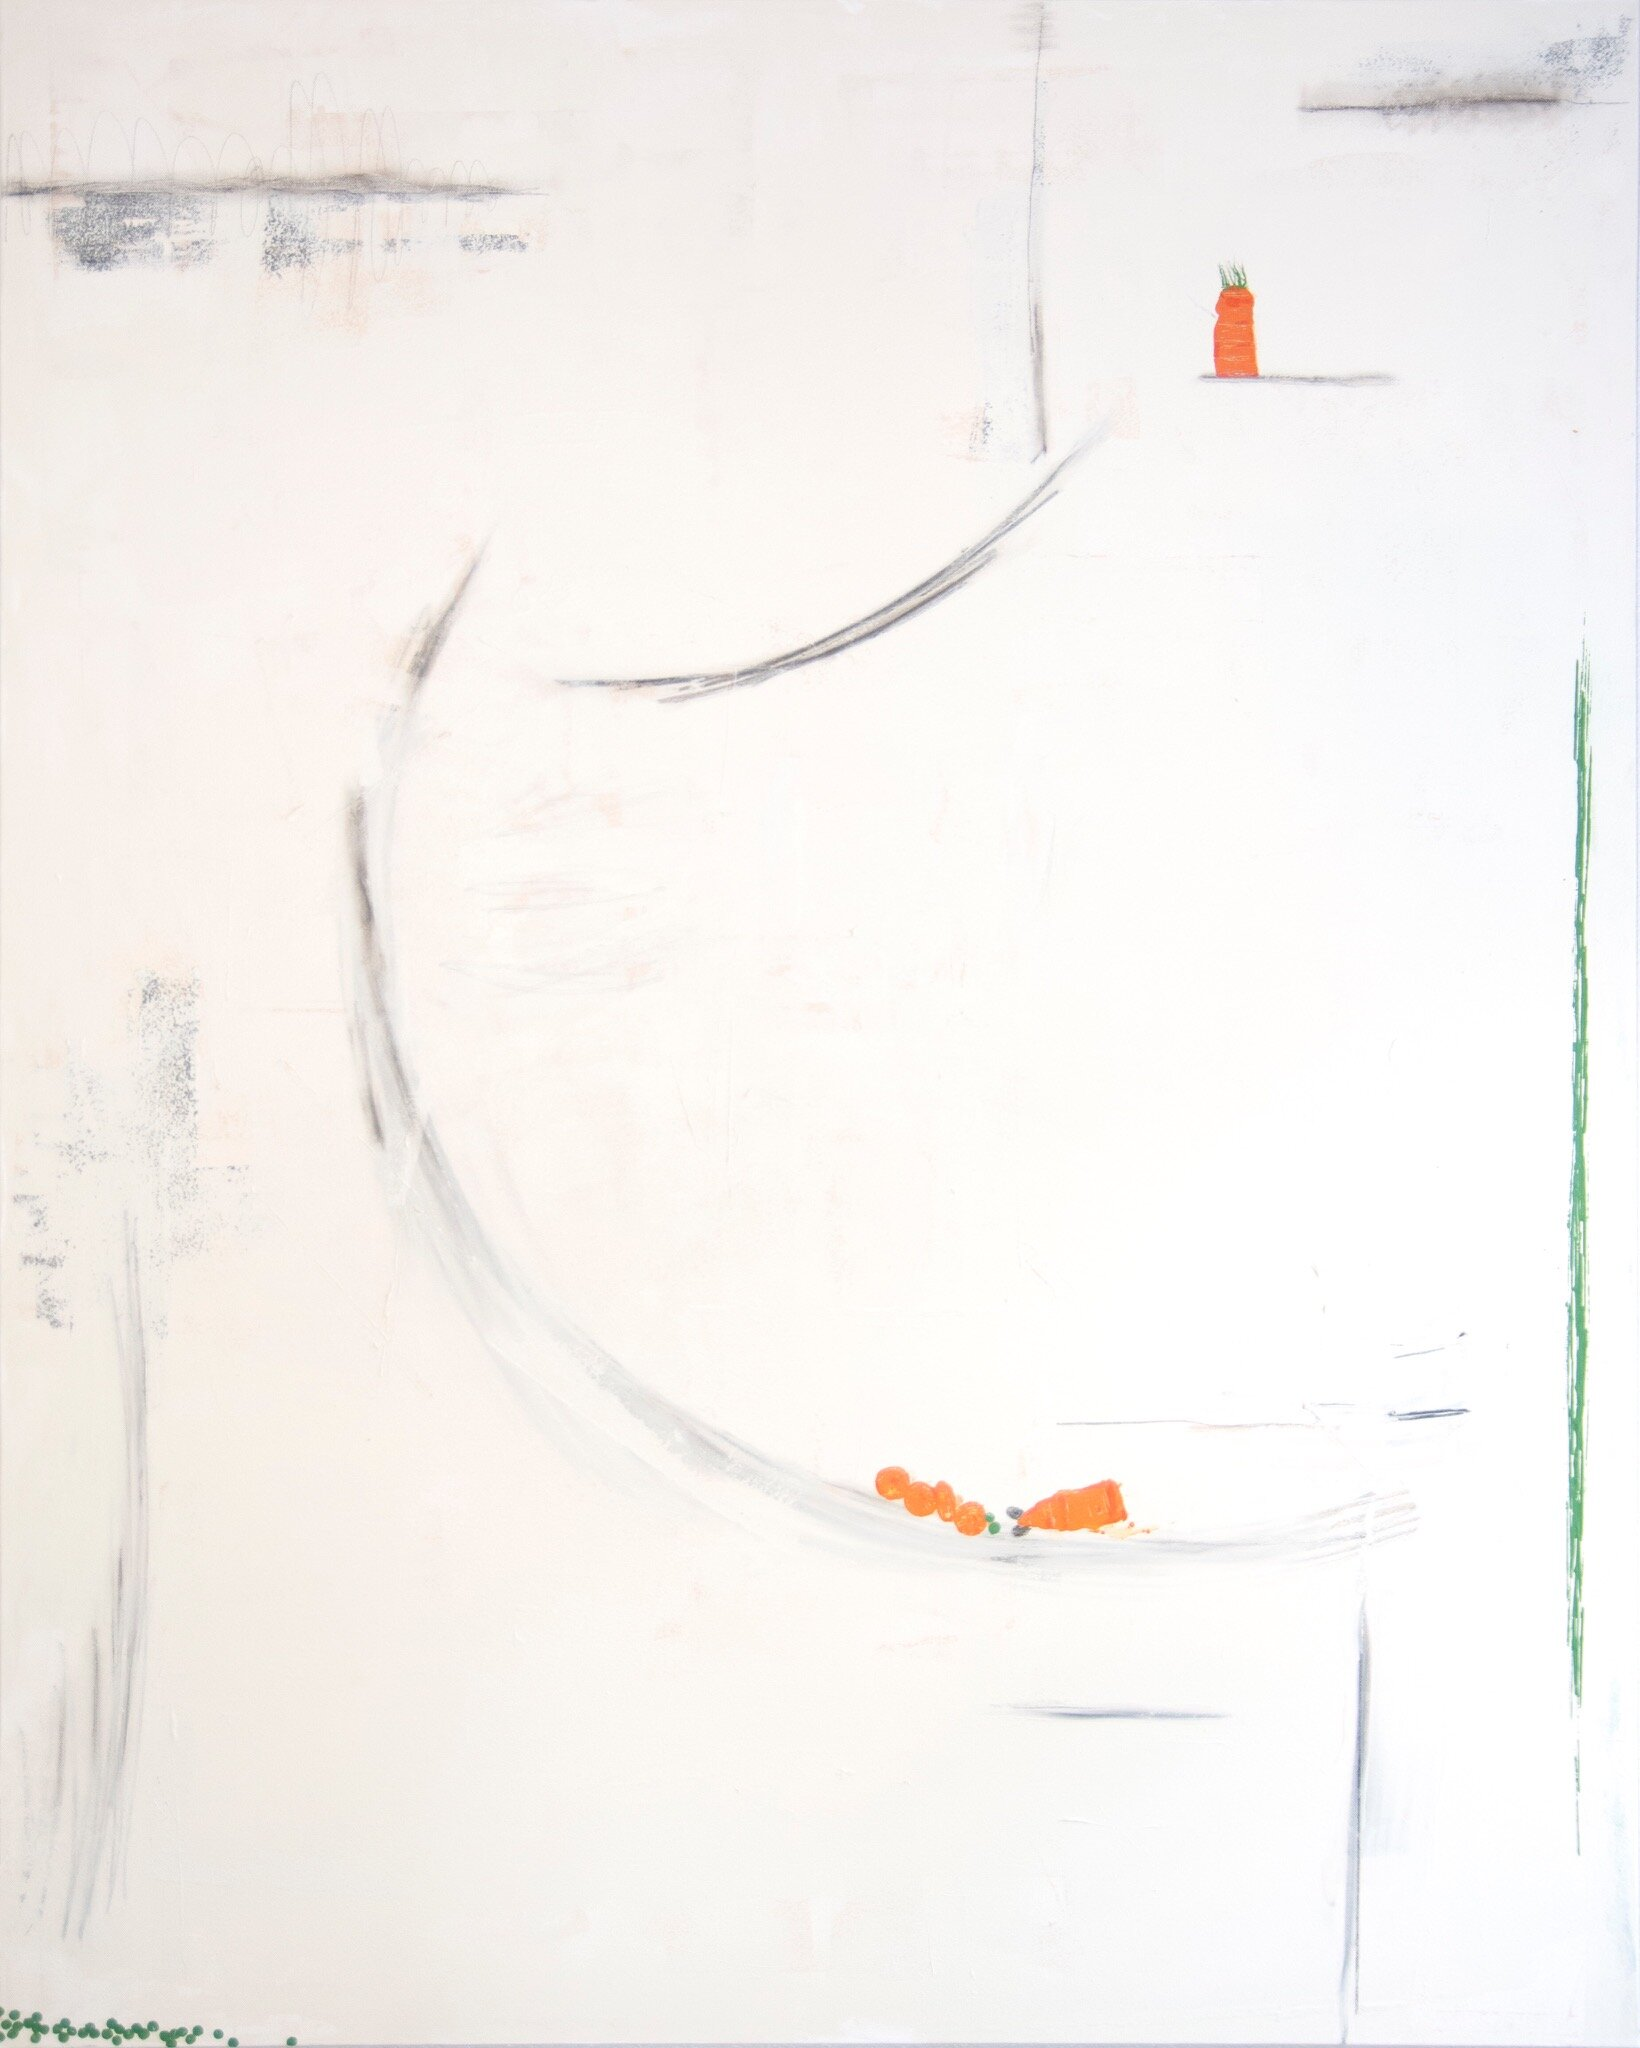 russo_lynne_Carrotte Guillotine_acrylic_60x48.jpeg